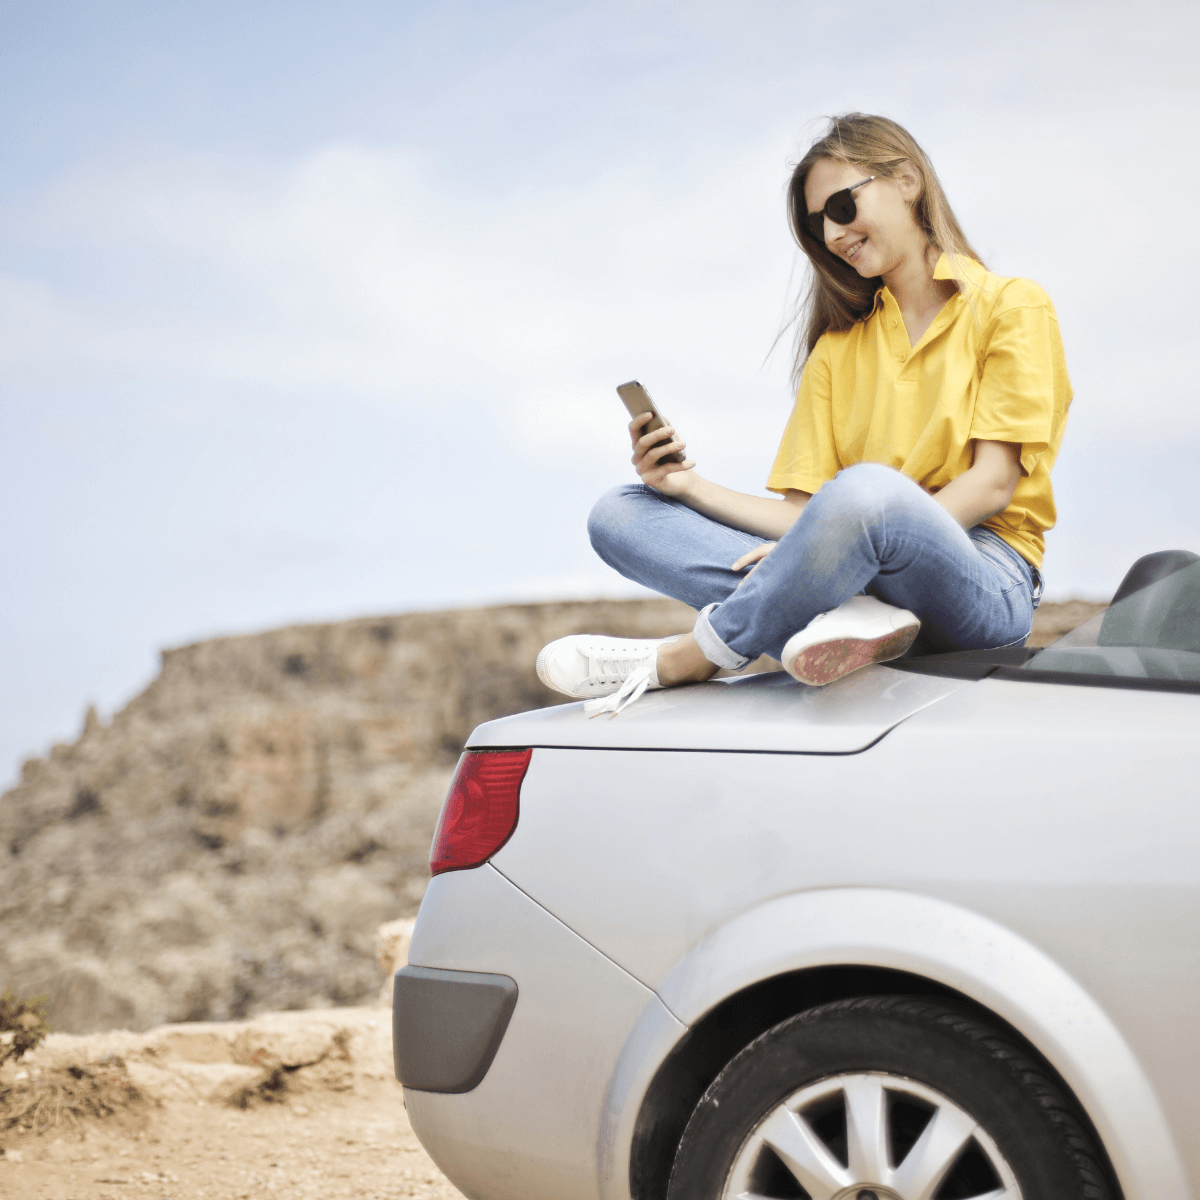 Best Car Loans For First Time Buyers 2021